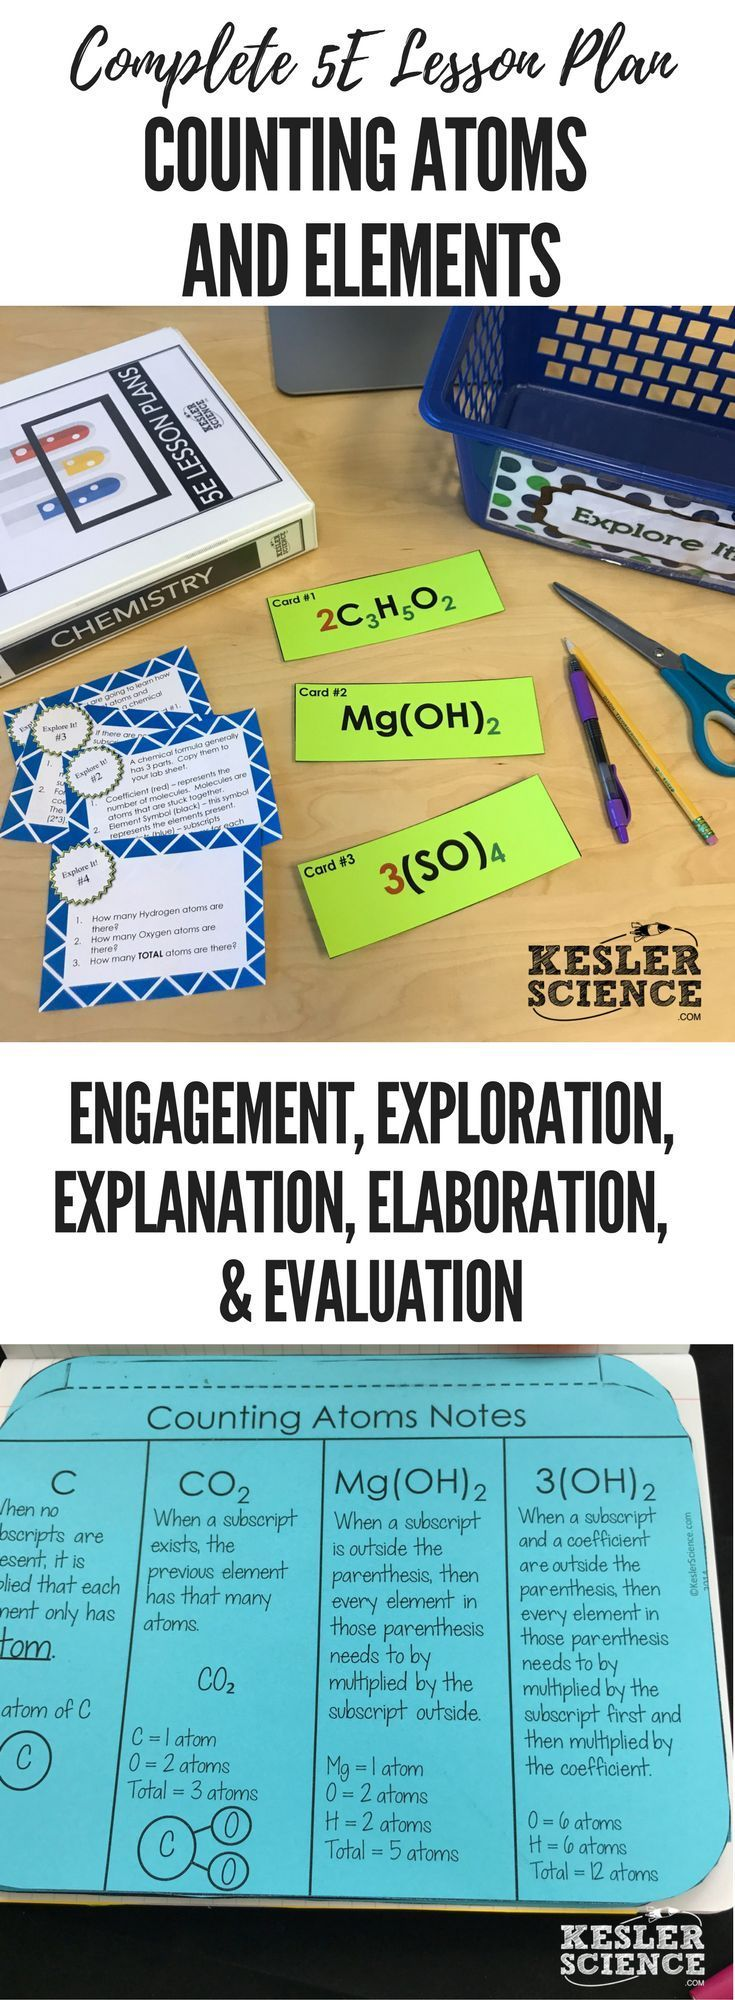 Counting Atoms and Elements 5E Lesson Plan Science